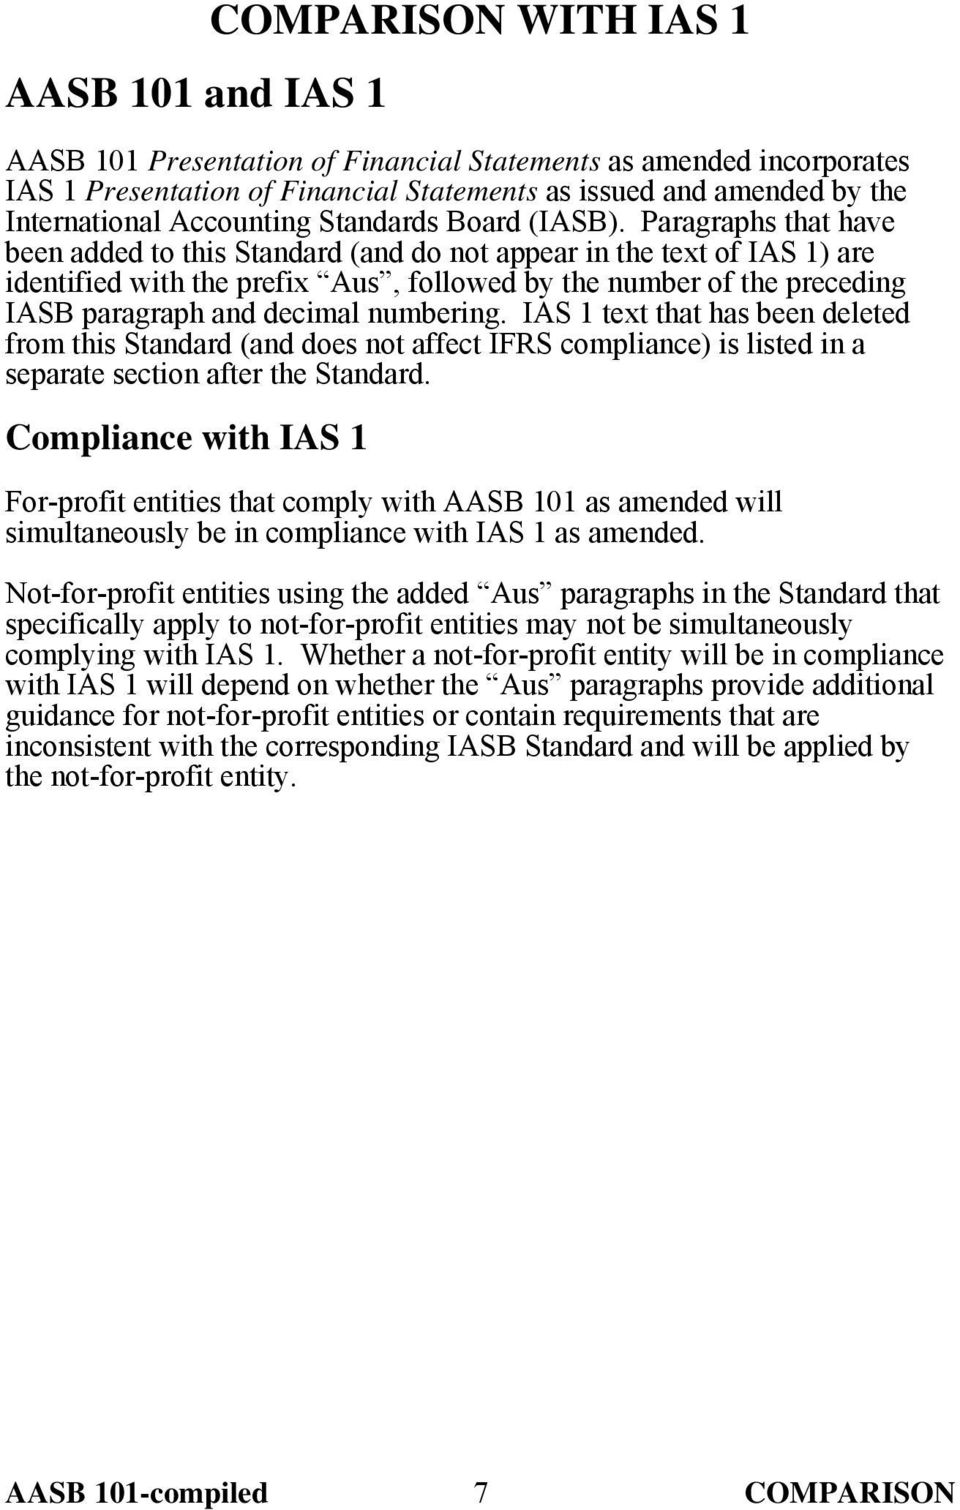 Paragraphs that have been added to this Standard (and do not appear in the text of IAS 1) are identified with the prefix Aus, followed by the number of the preceding IASB paragraph and decimal